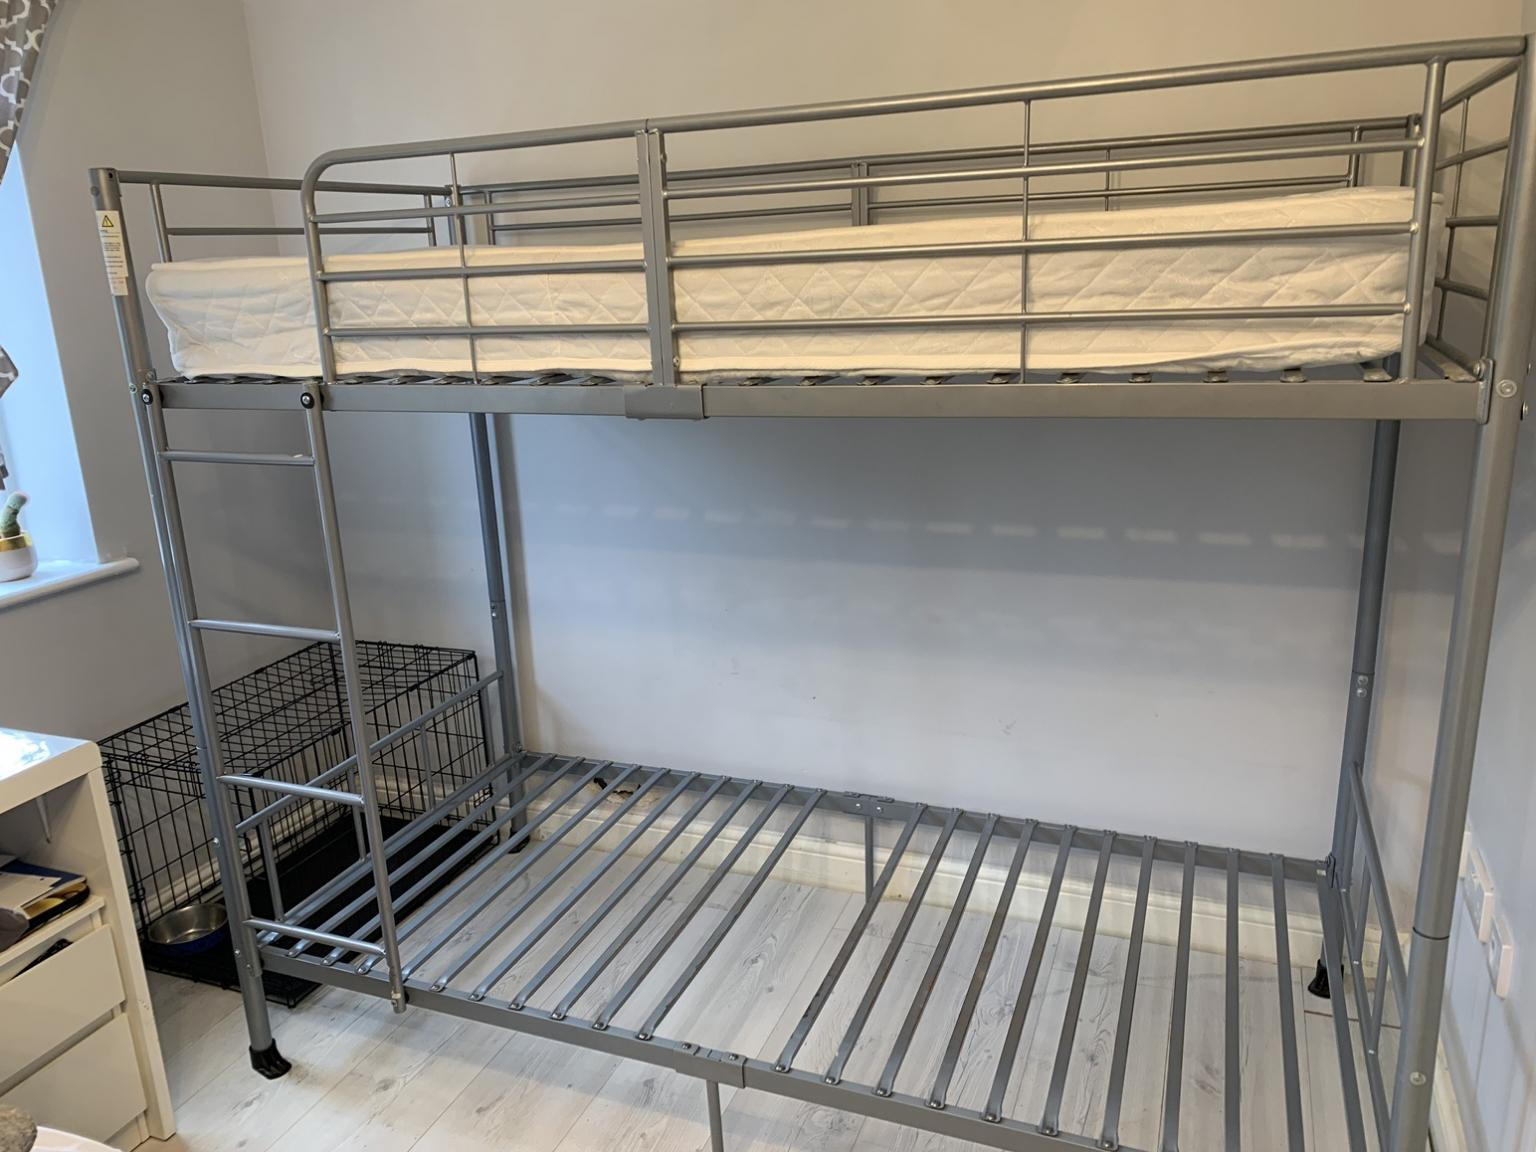 Bunk Beds In B97 Redditch For 20 00 For Sale Shpock